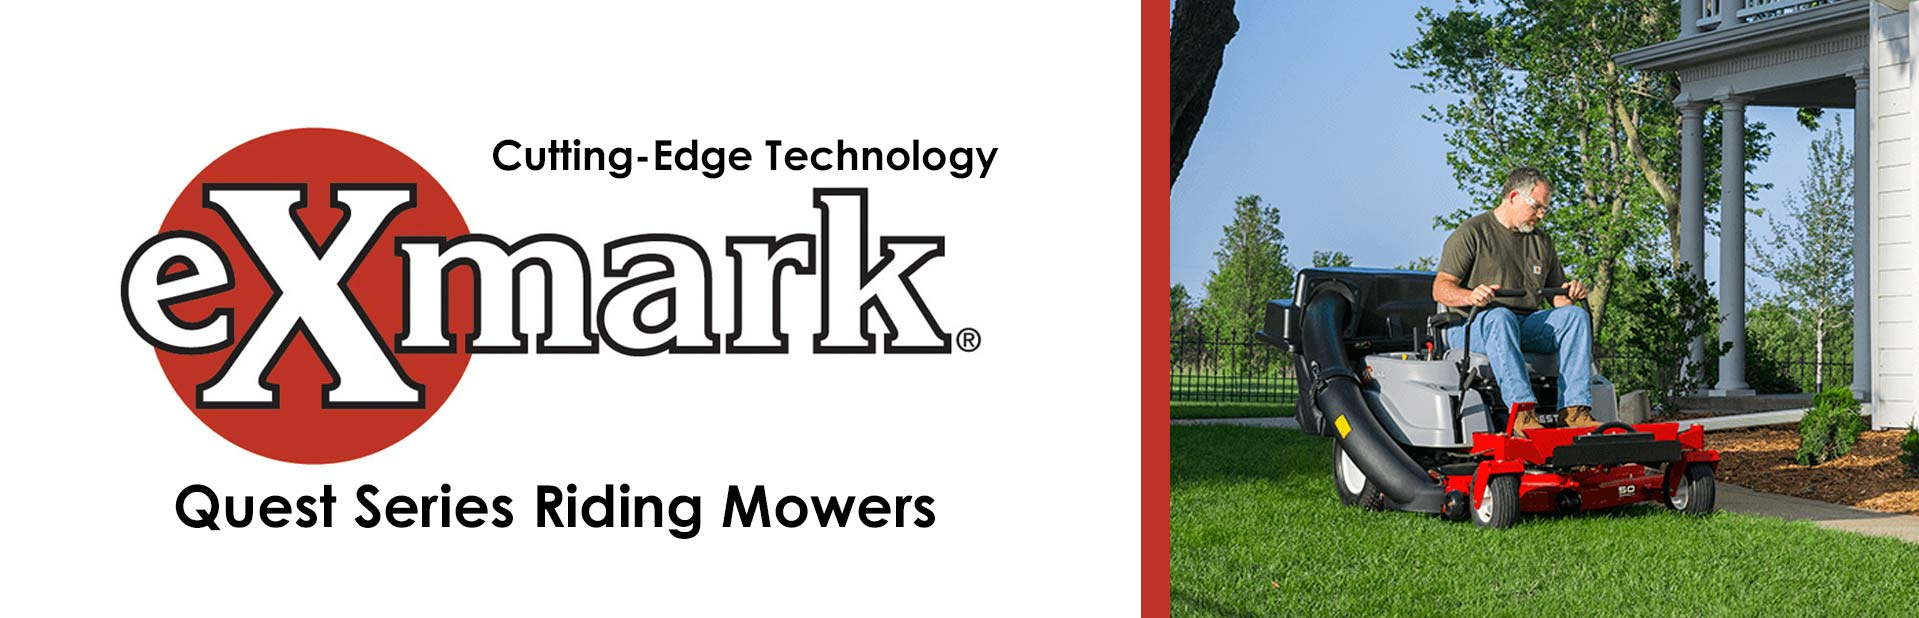 Exmark Quest Series Riding Mowers: Click here to view the models.